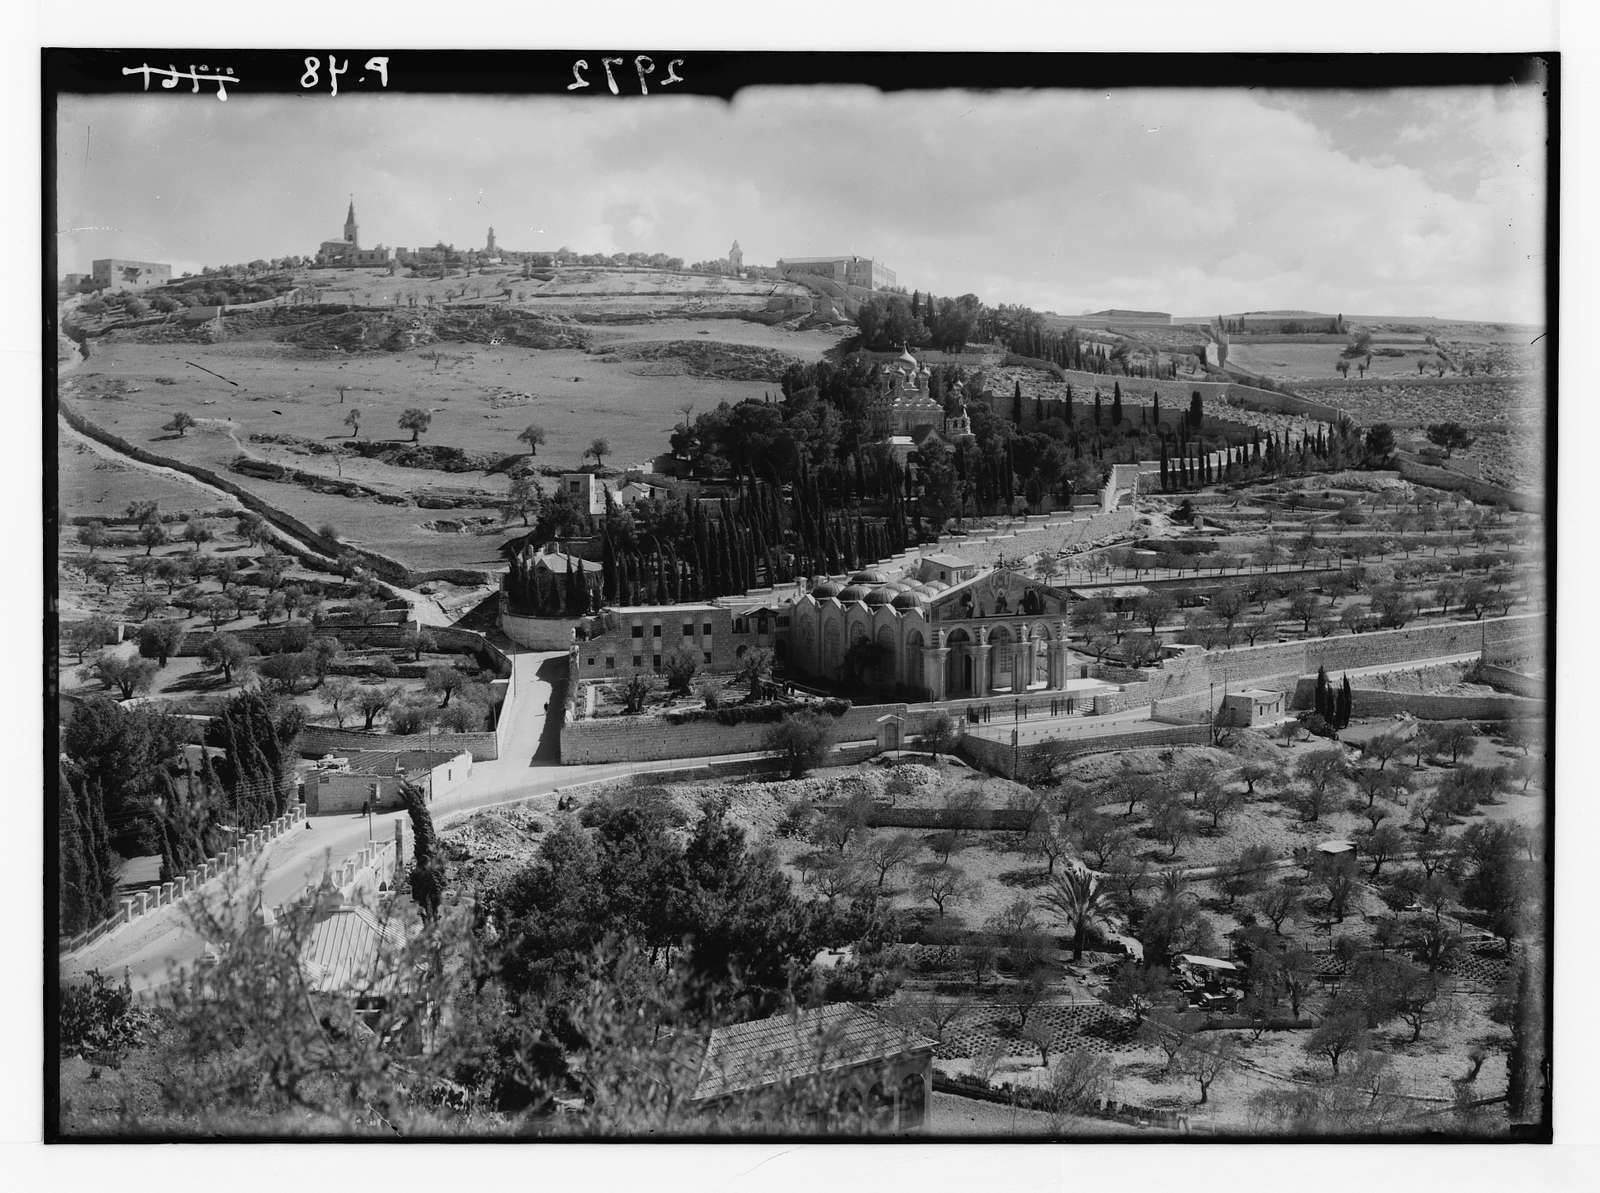 Mount of Olives and Gethsemane. Garden of Gethsemane. Taken since stately cypress trees were removed in 1933